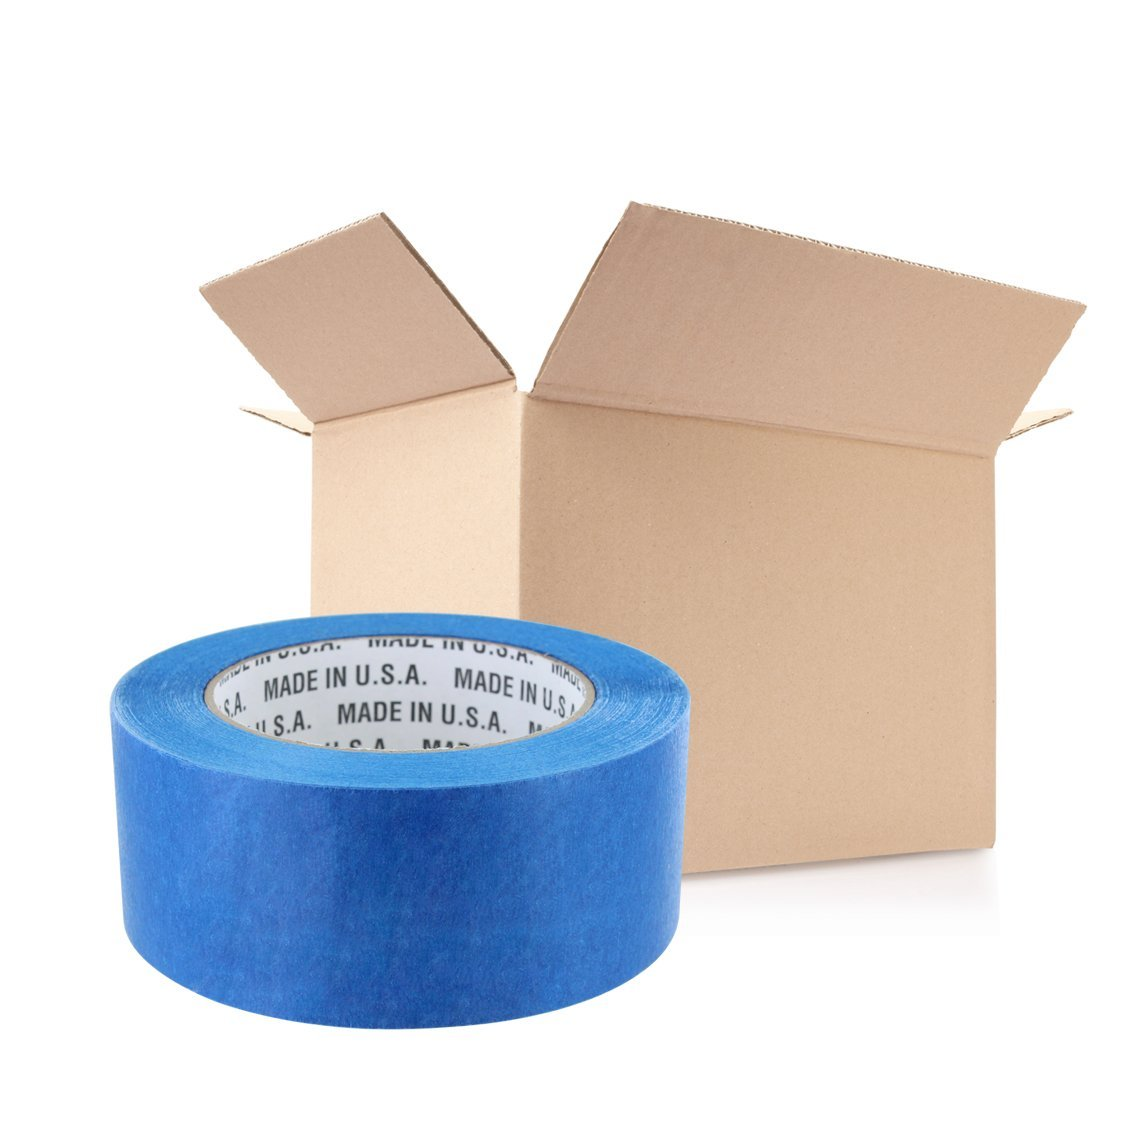 Rugged Blue M 187 Blue Painters' Masking Tape 2 in x 60 yd - 24 Pack